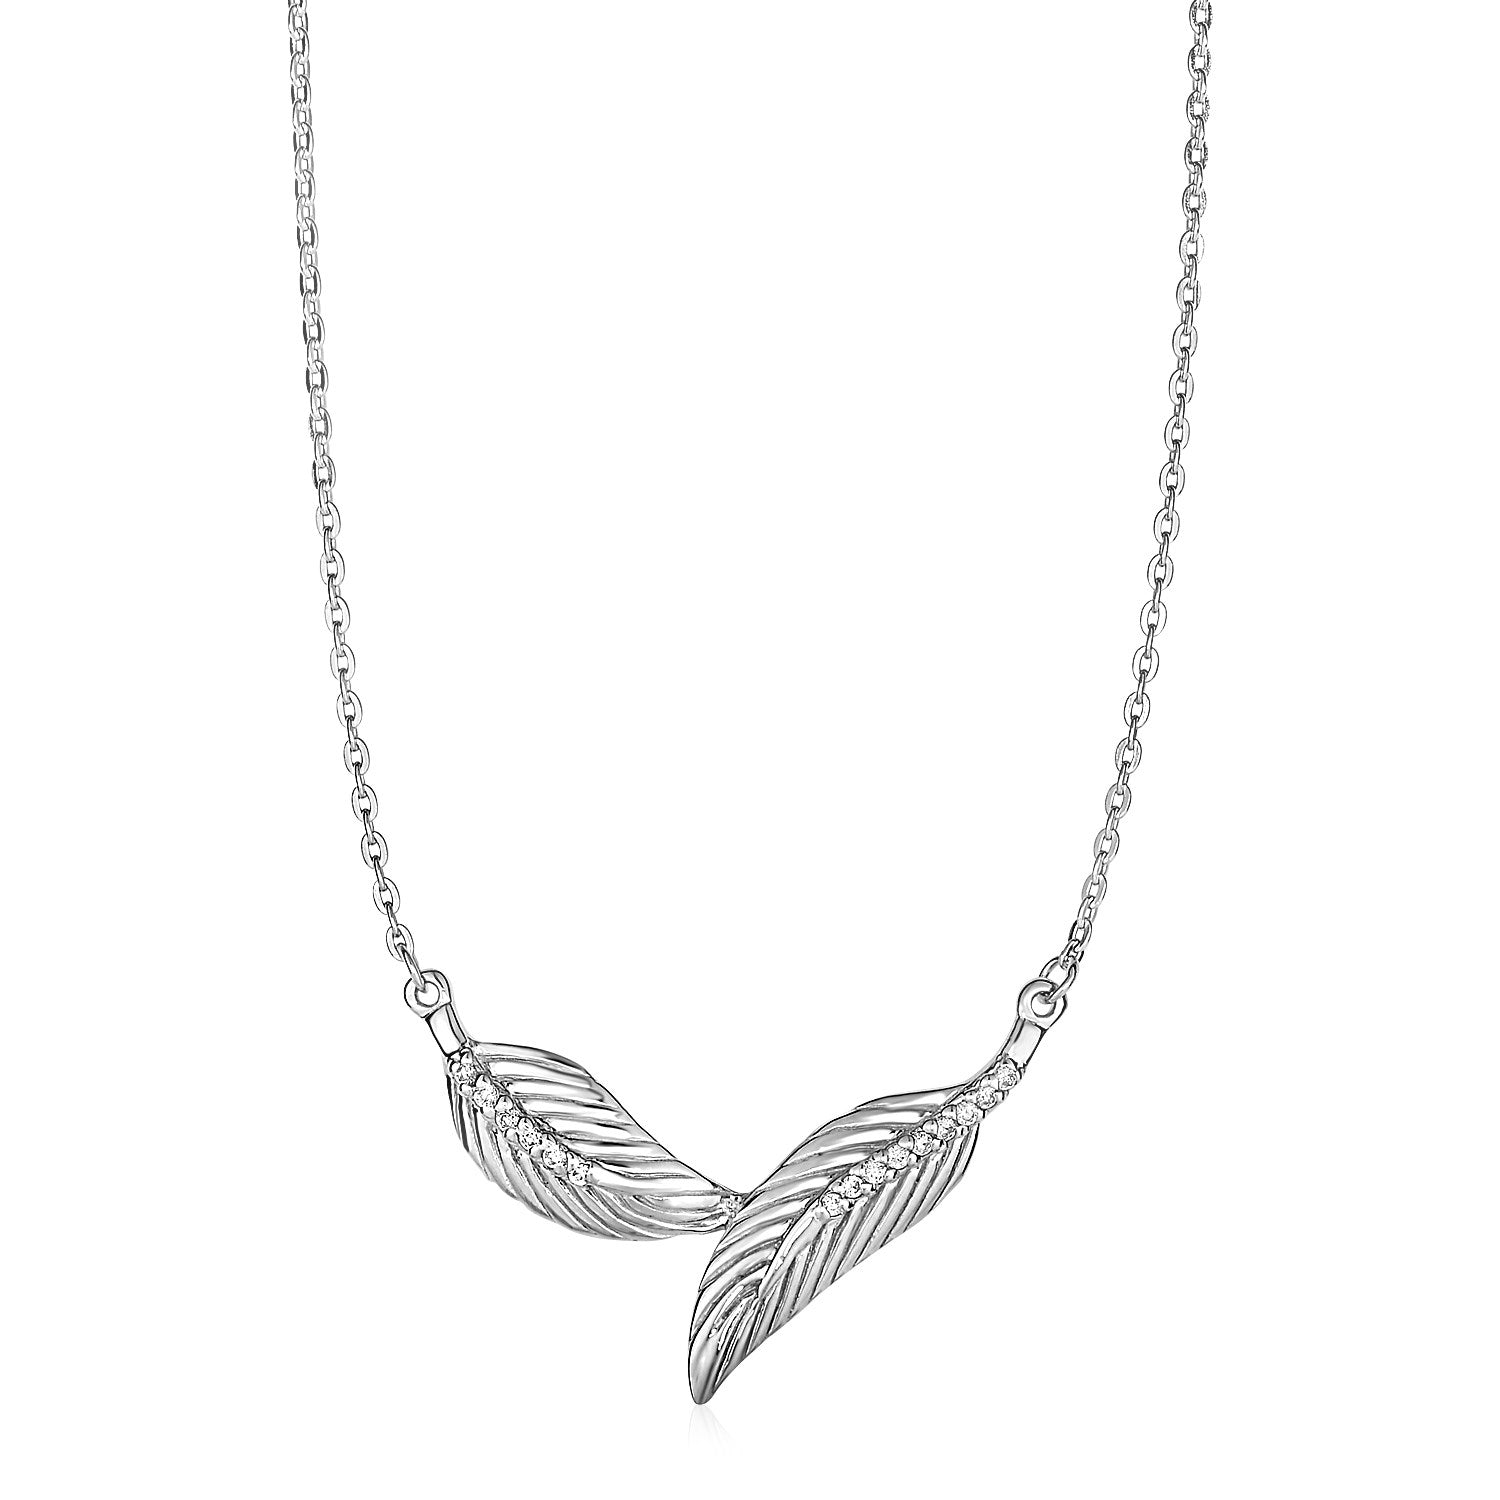 Necklace with Two Textured Leaves in Sterling Silver